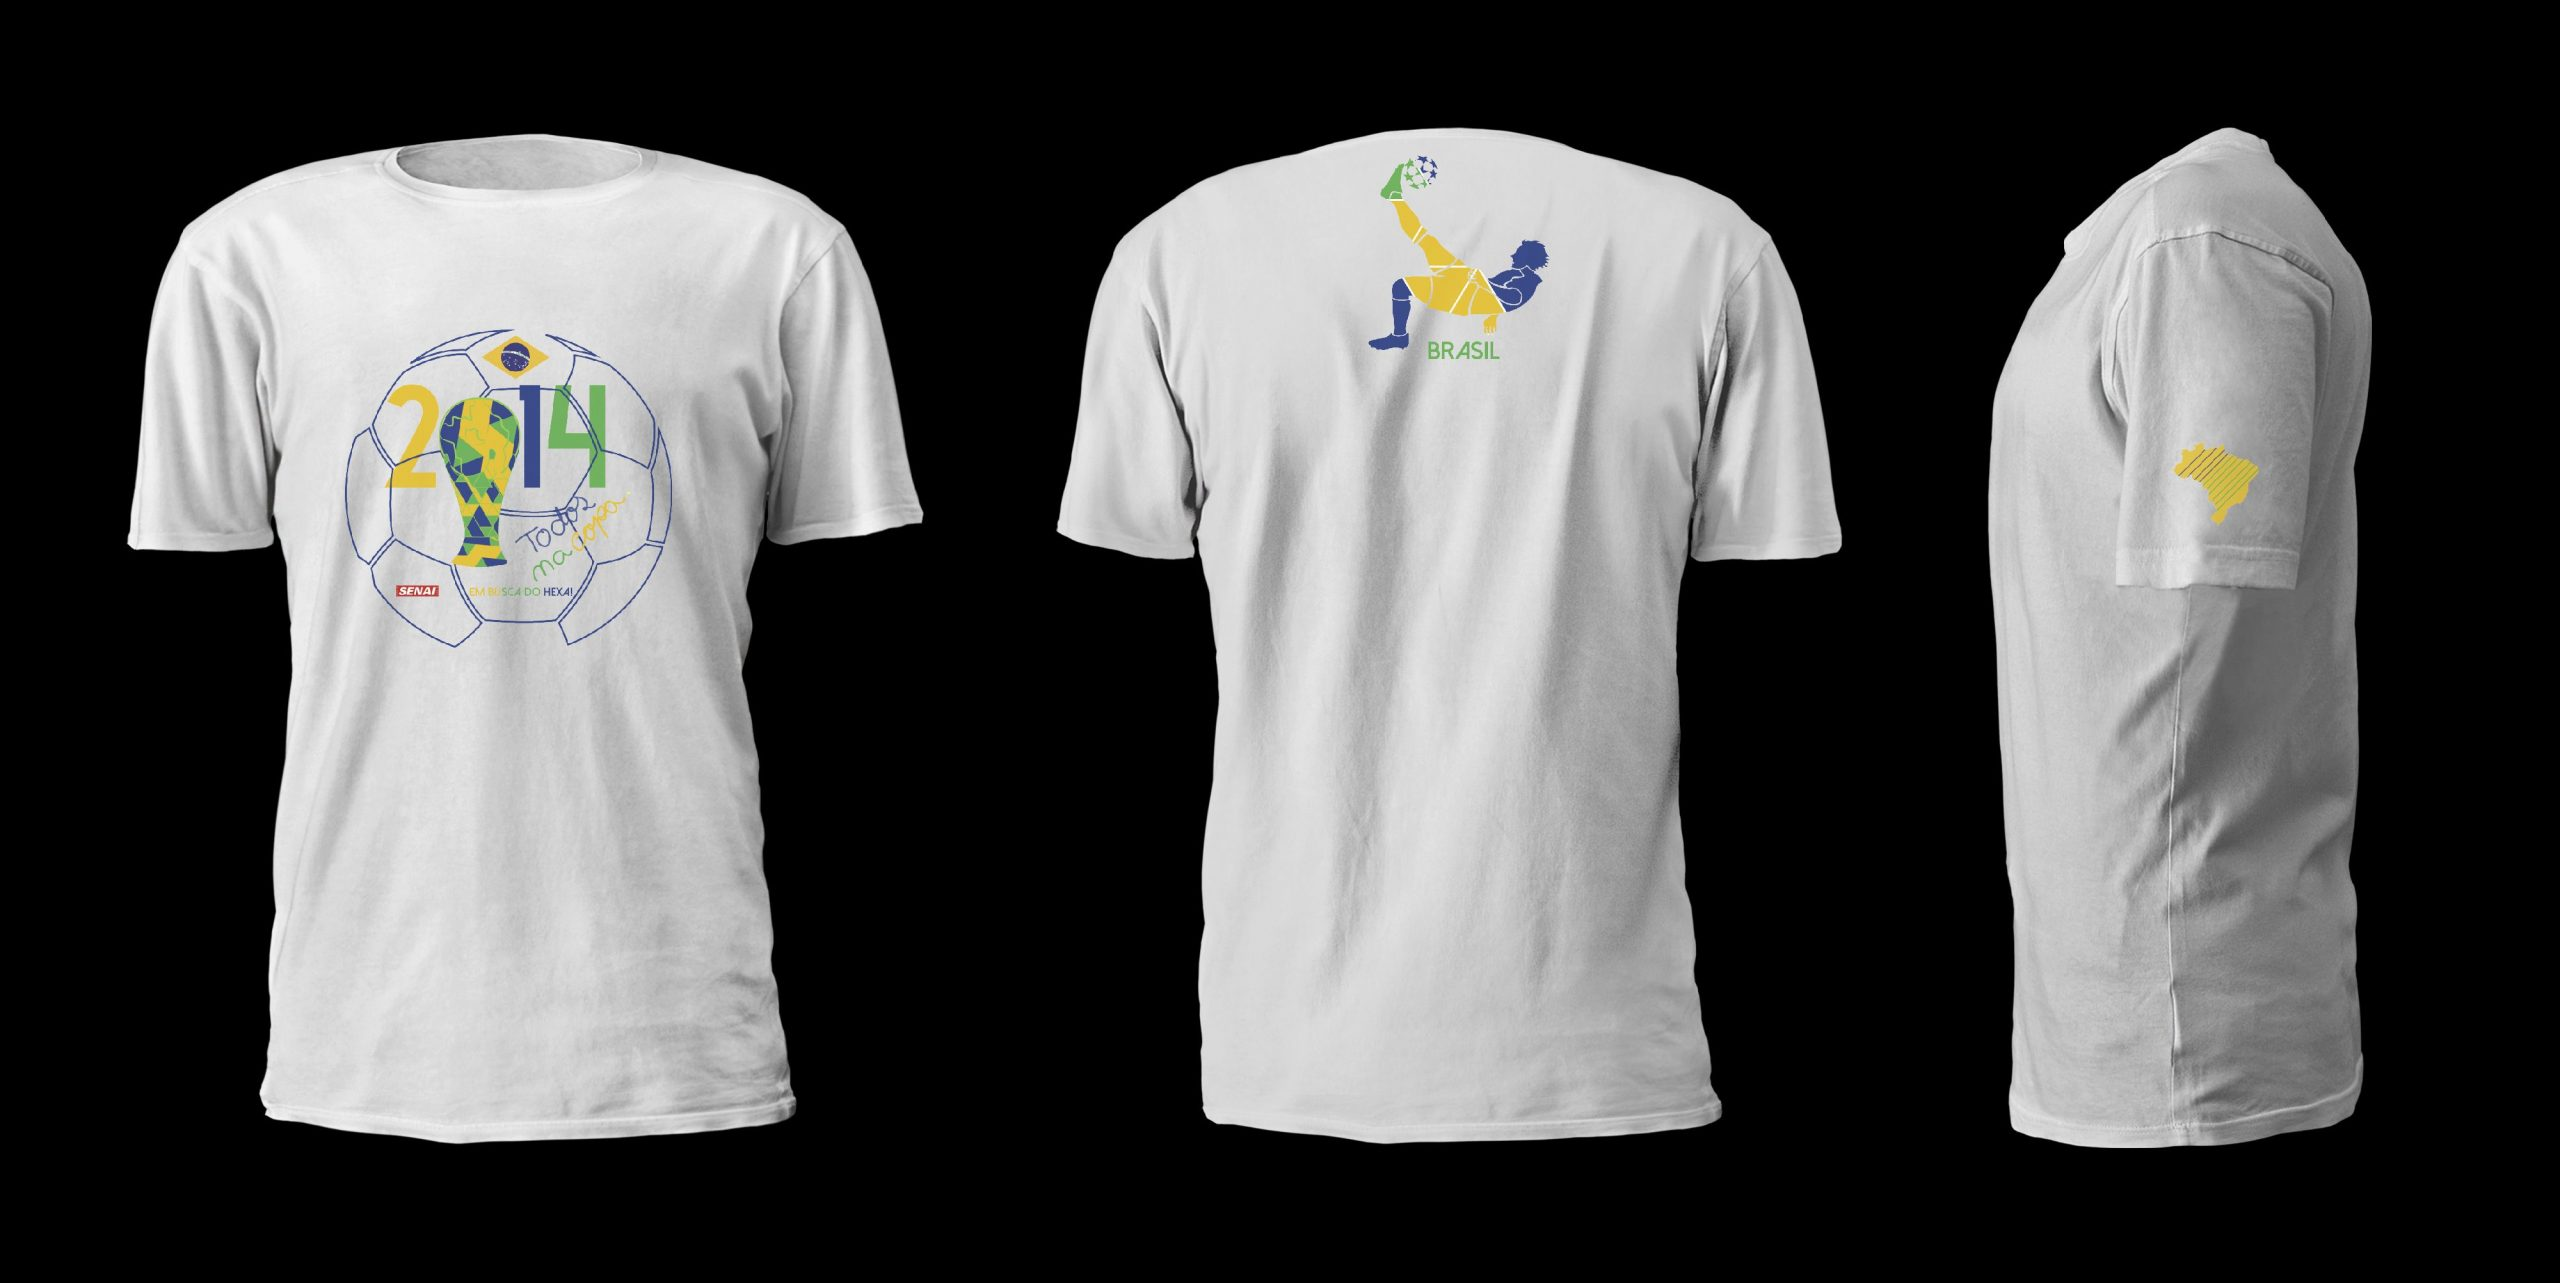 mockups camisetas scaled